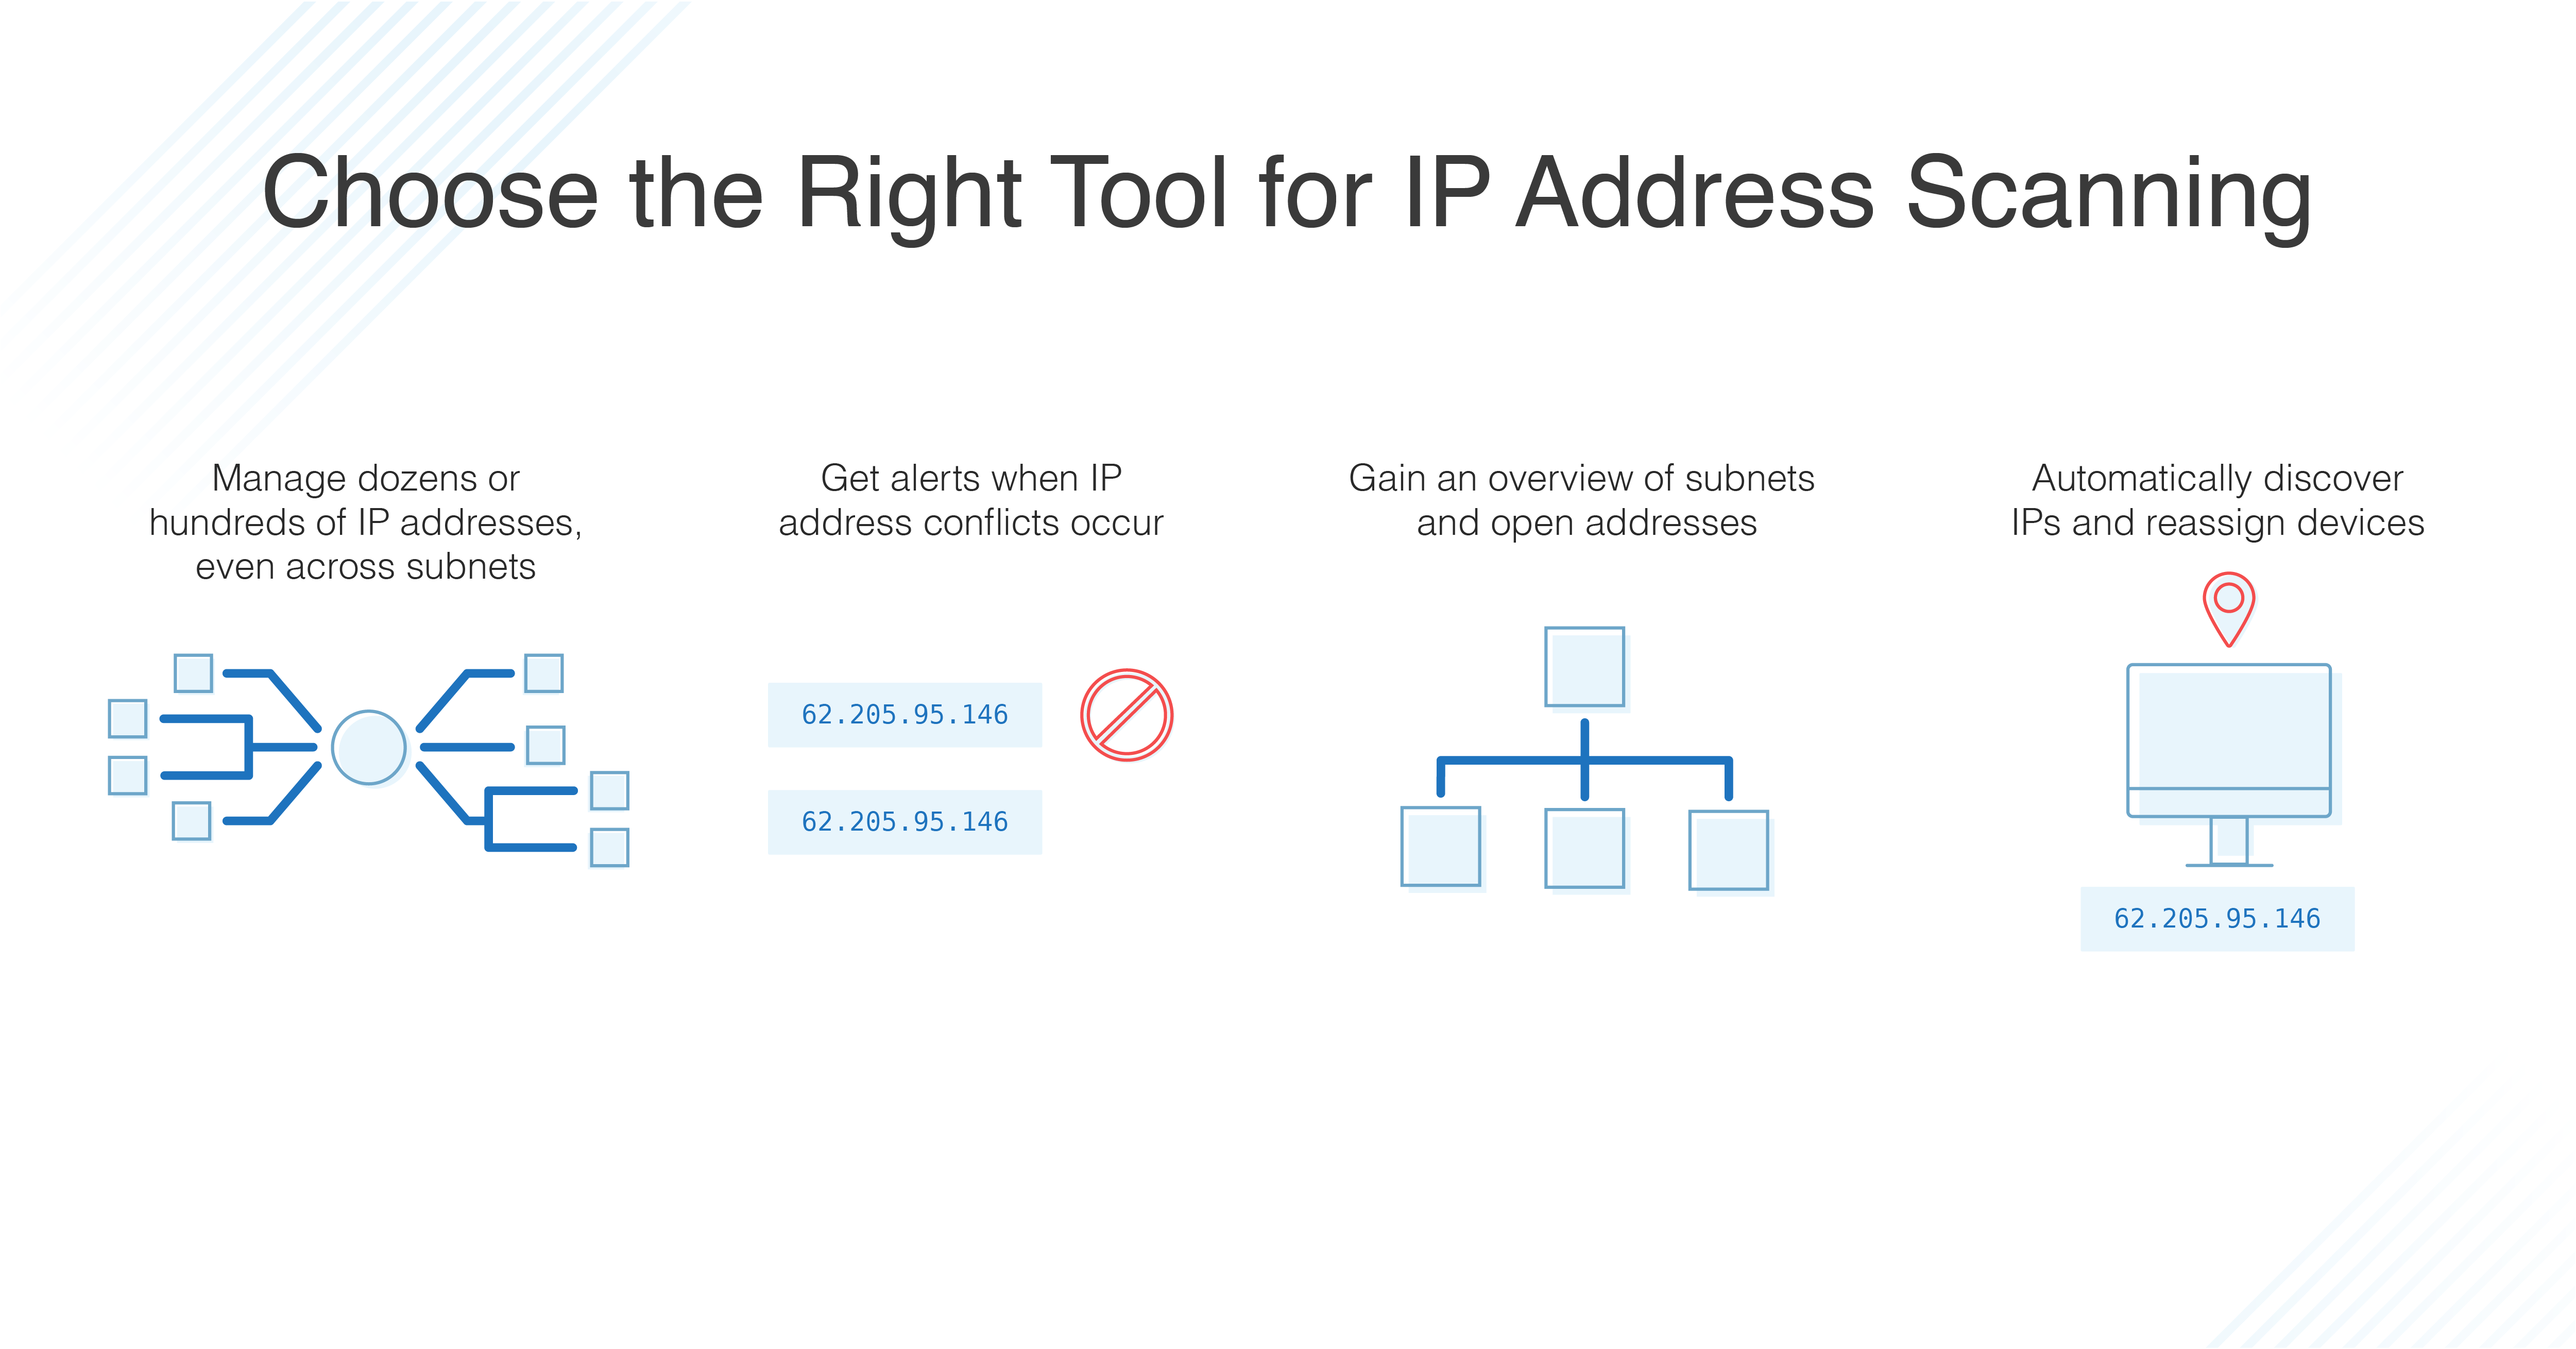 How To Scan For Any Device Ip Address On A Network With Tools Dnsstuff